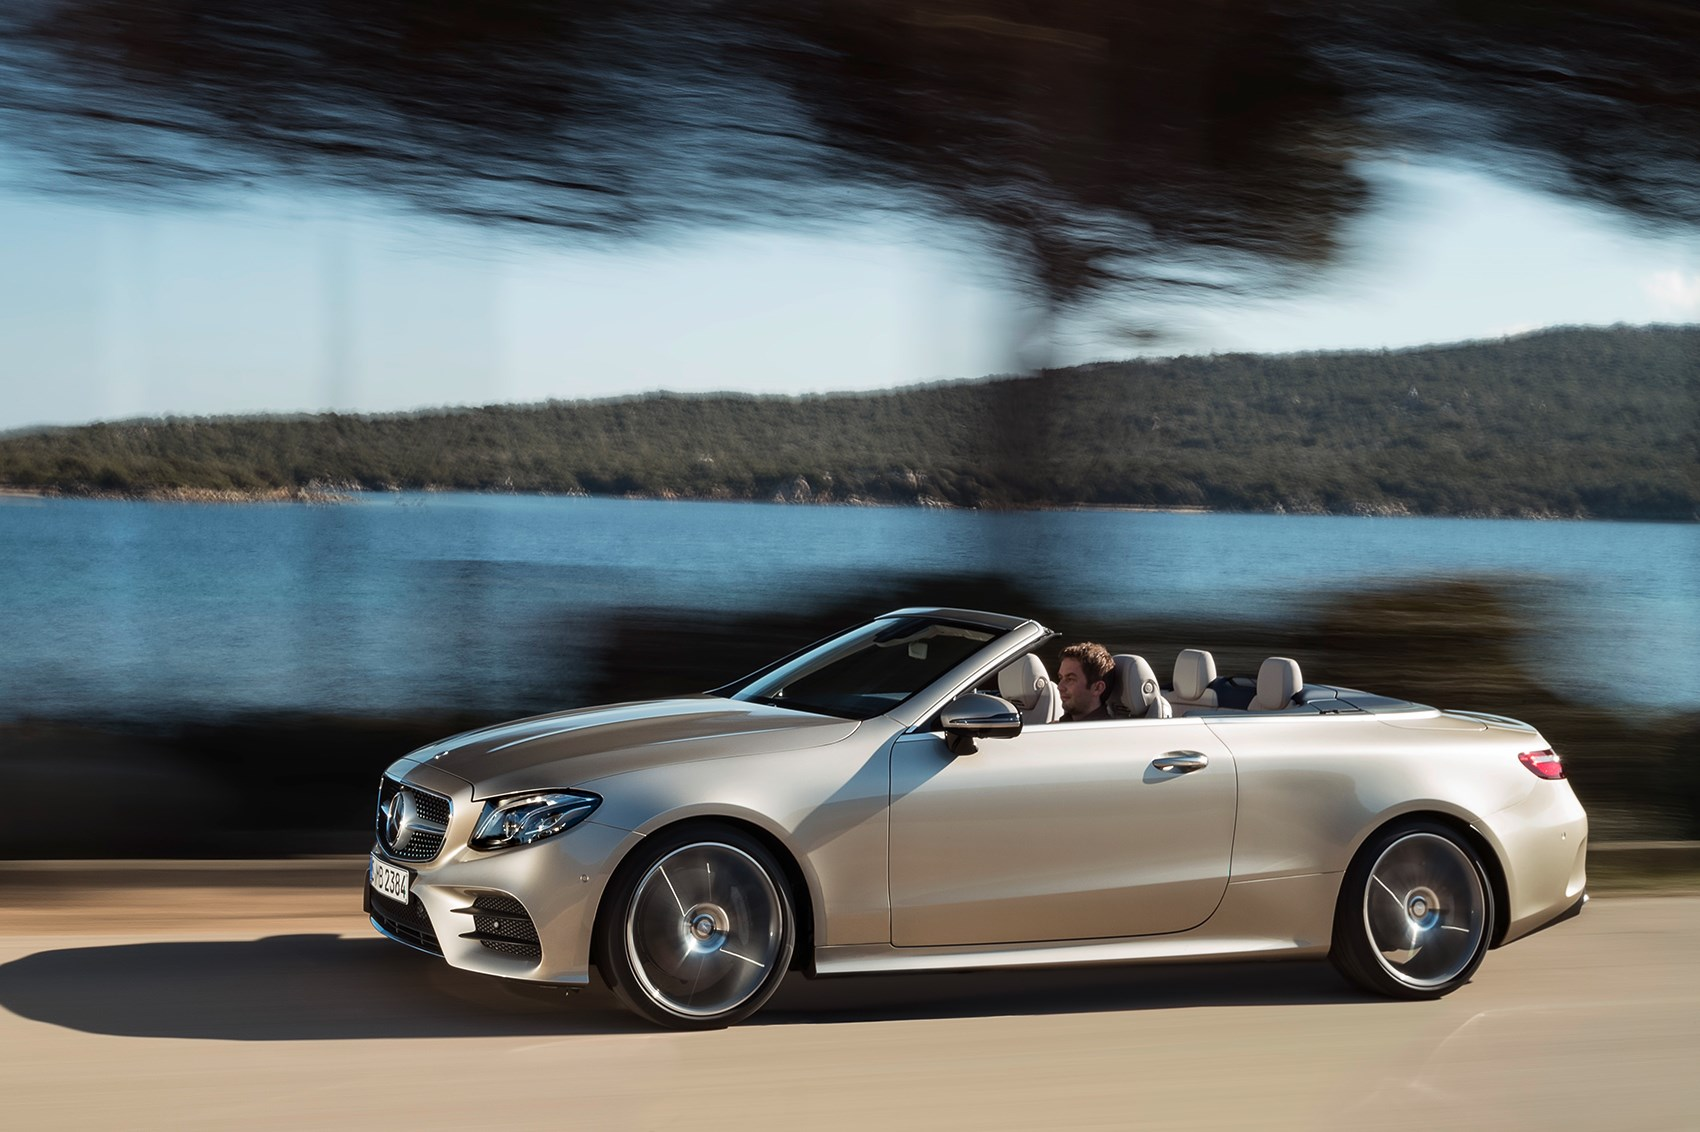 Merc blows the roof off the mercedes e class cabriolet at for Mercedes benz e350 cabriolet